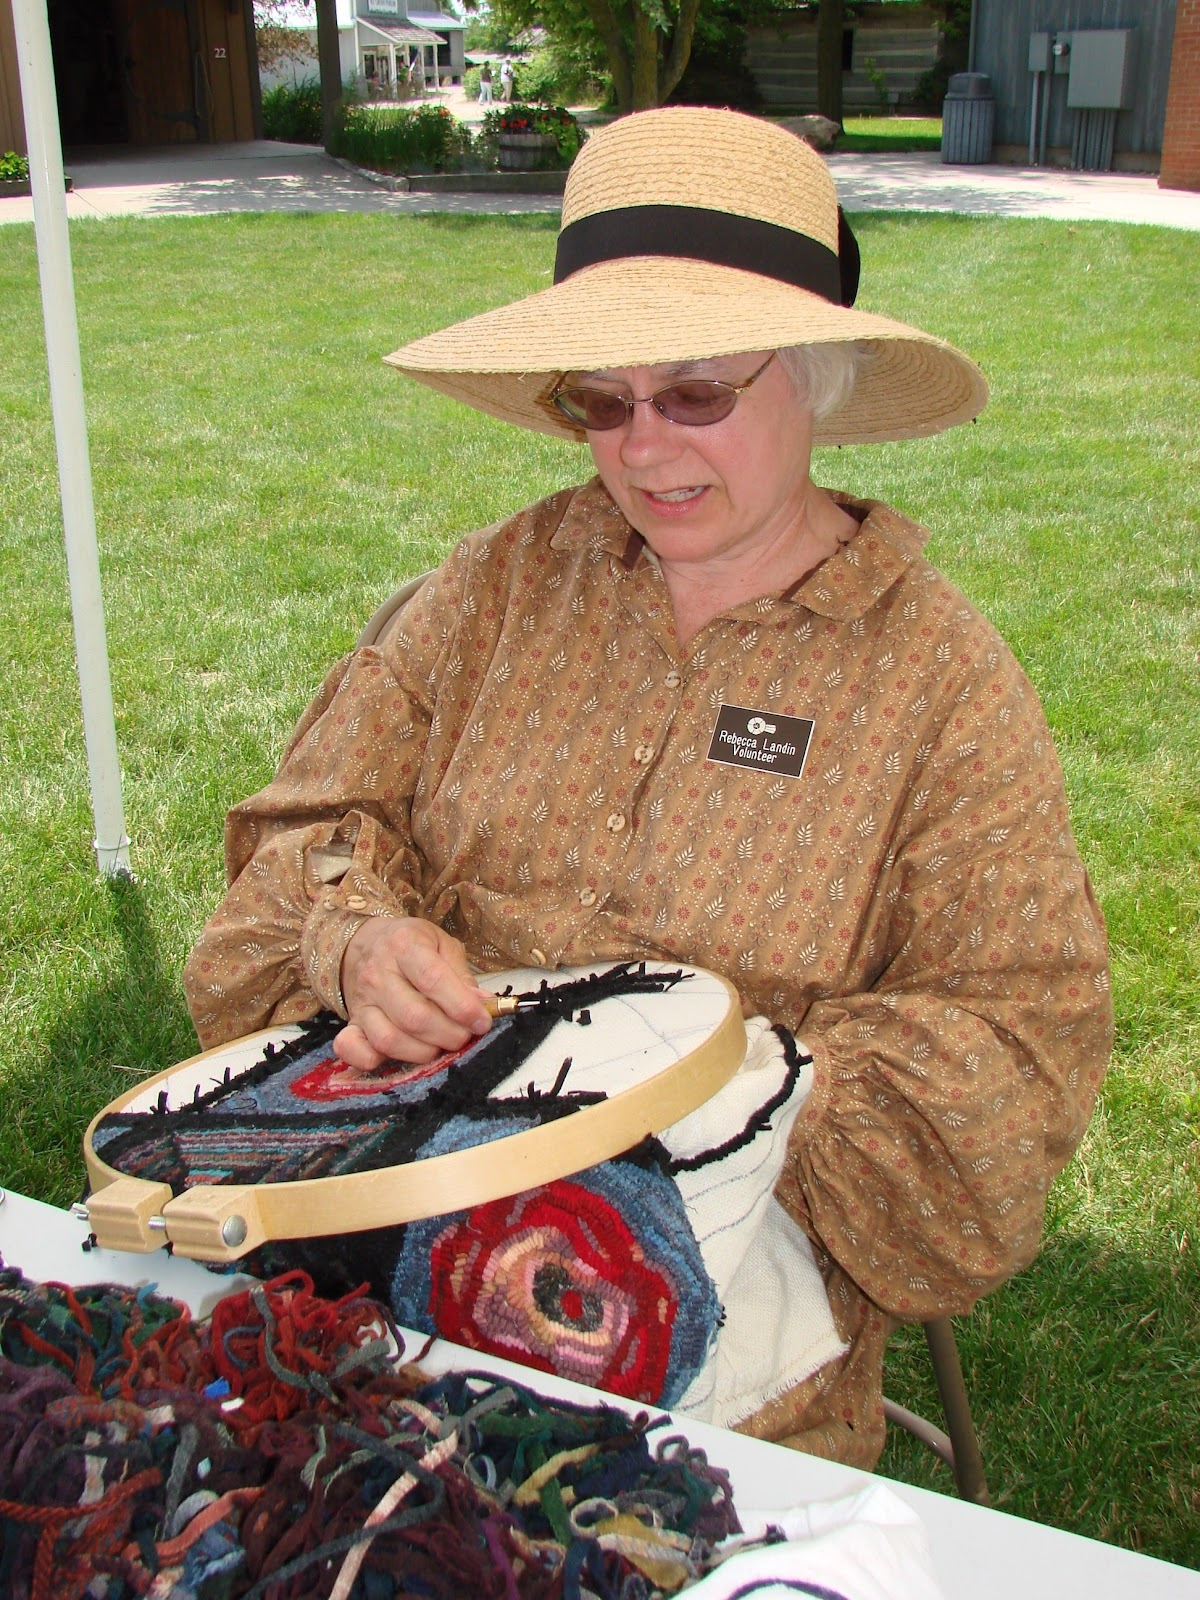 As We Welcome Rug S From Across The Country To Our Nationally Recognized Hooking Event This Week Realize There Are Still Many People Who Don T